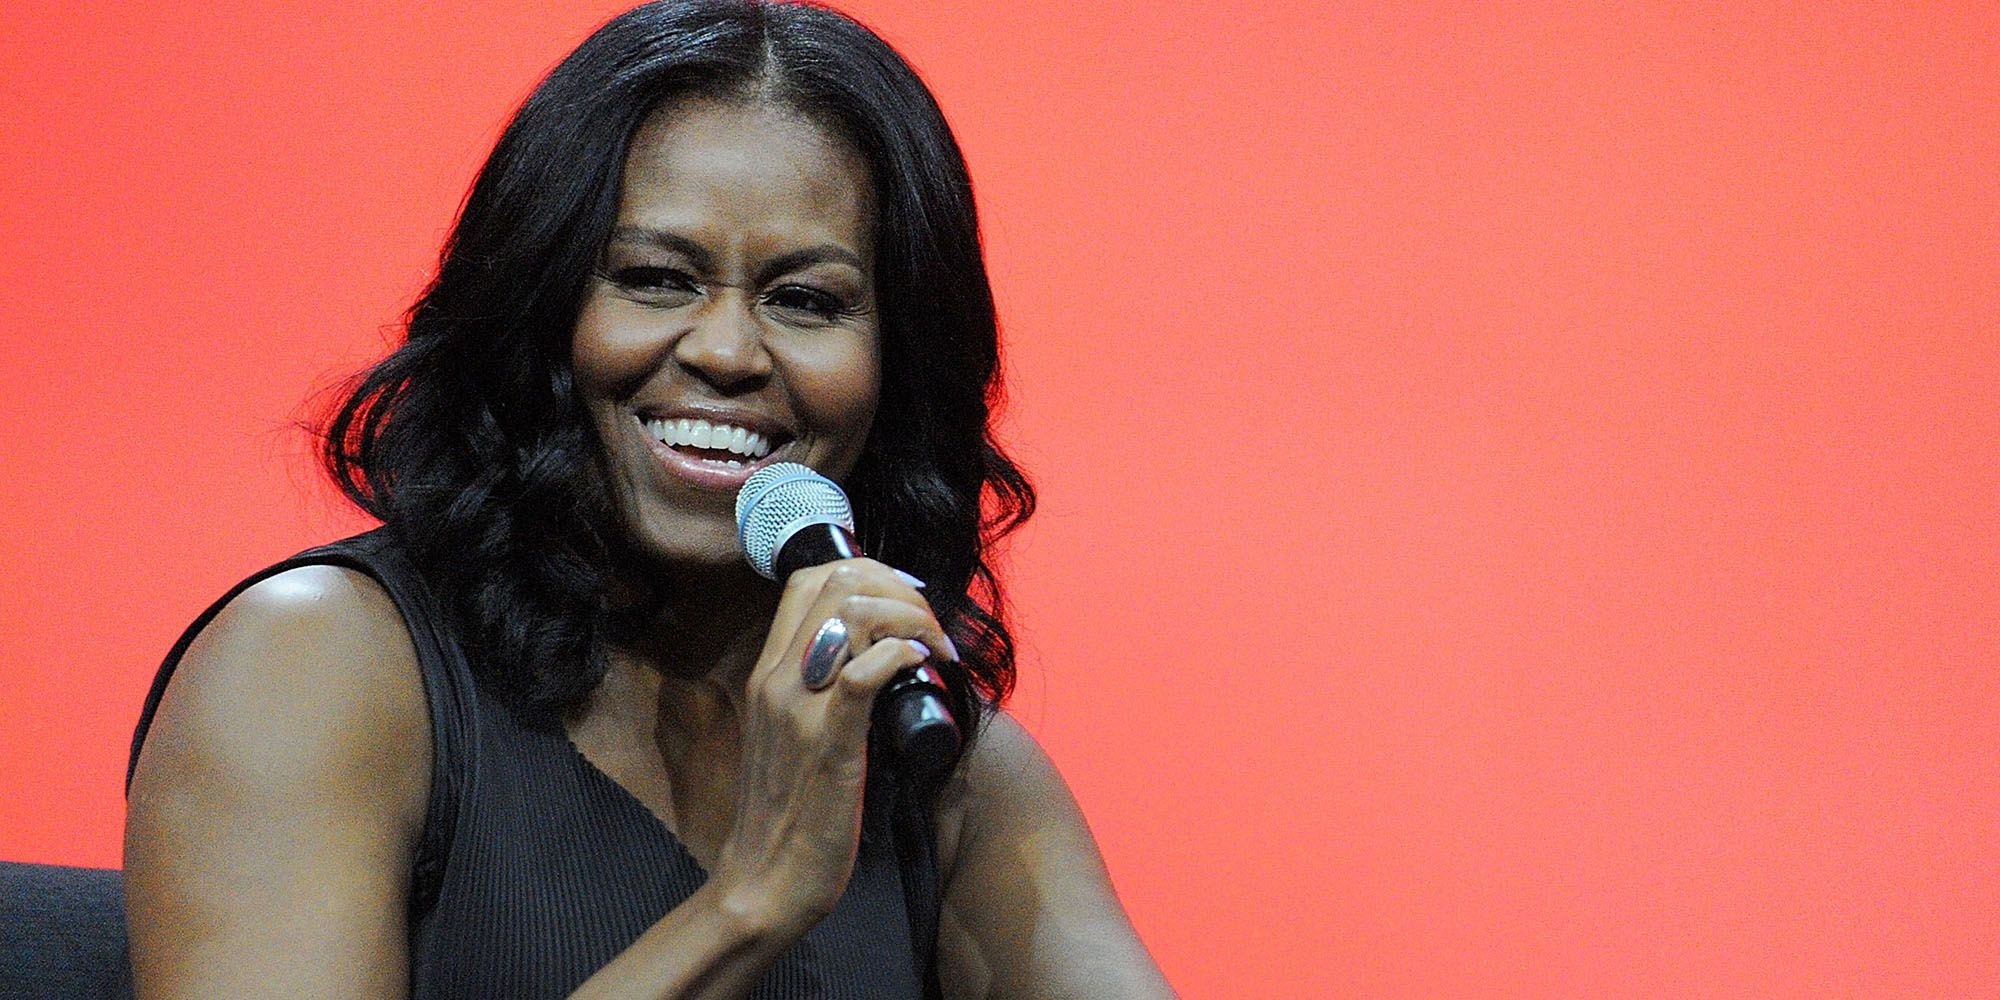 Michelle Obama Is Back, But She Wont Run for President